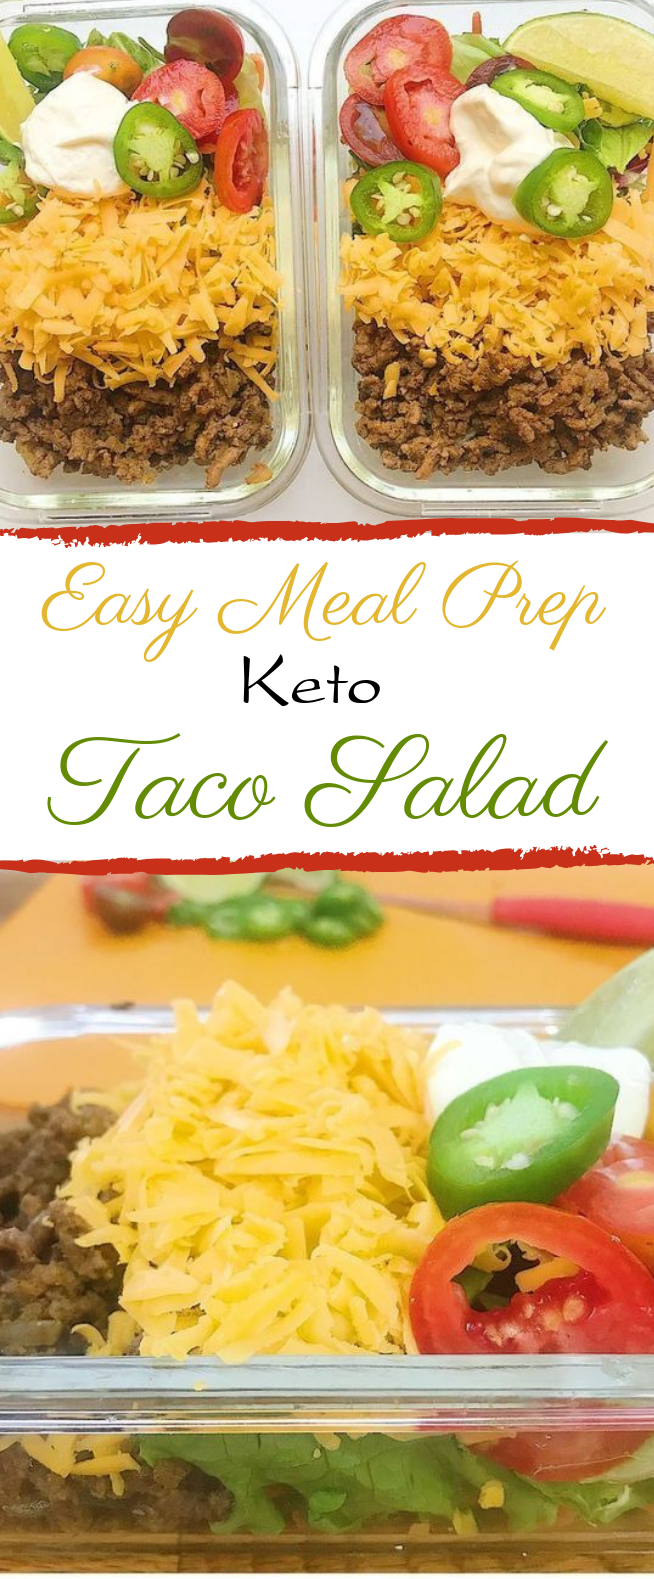 Easy Meal Prep Keto Taco Salad #lunch #keto #tacosalad